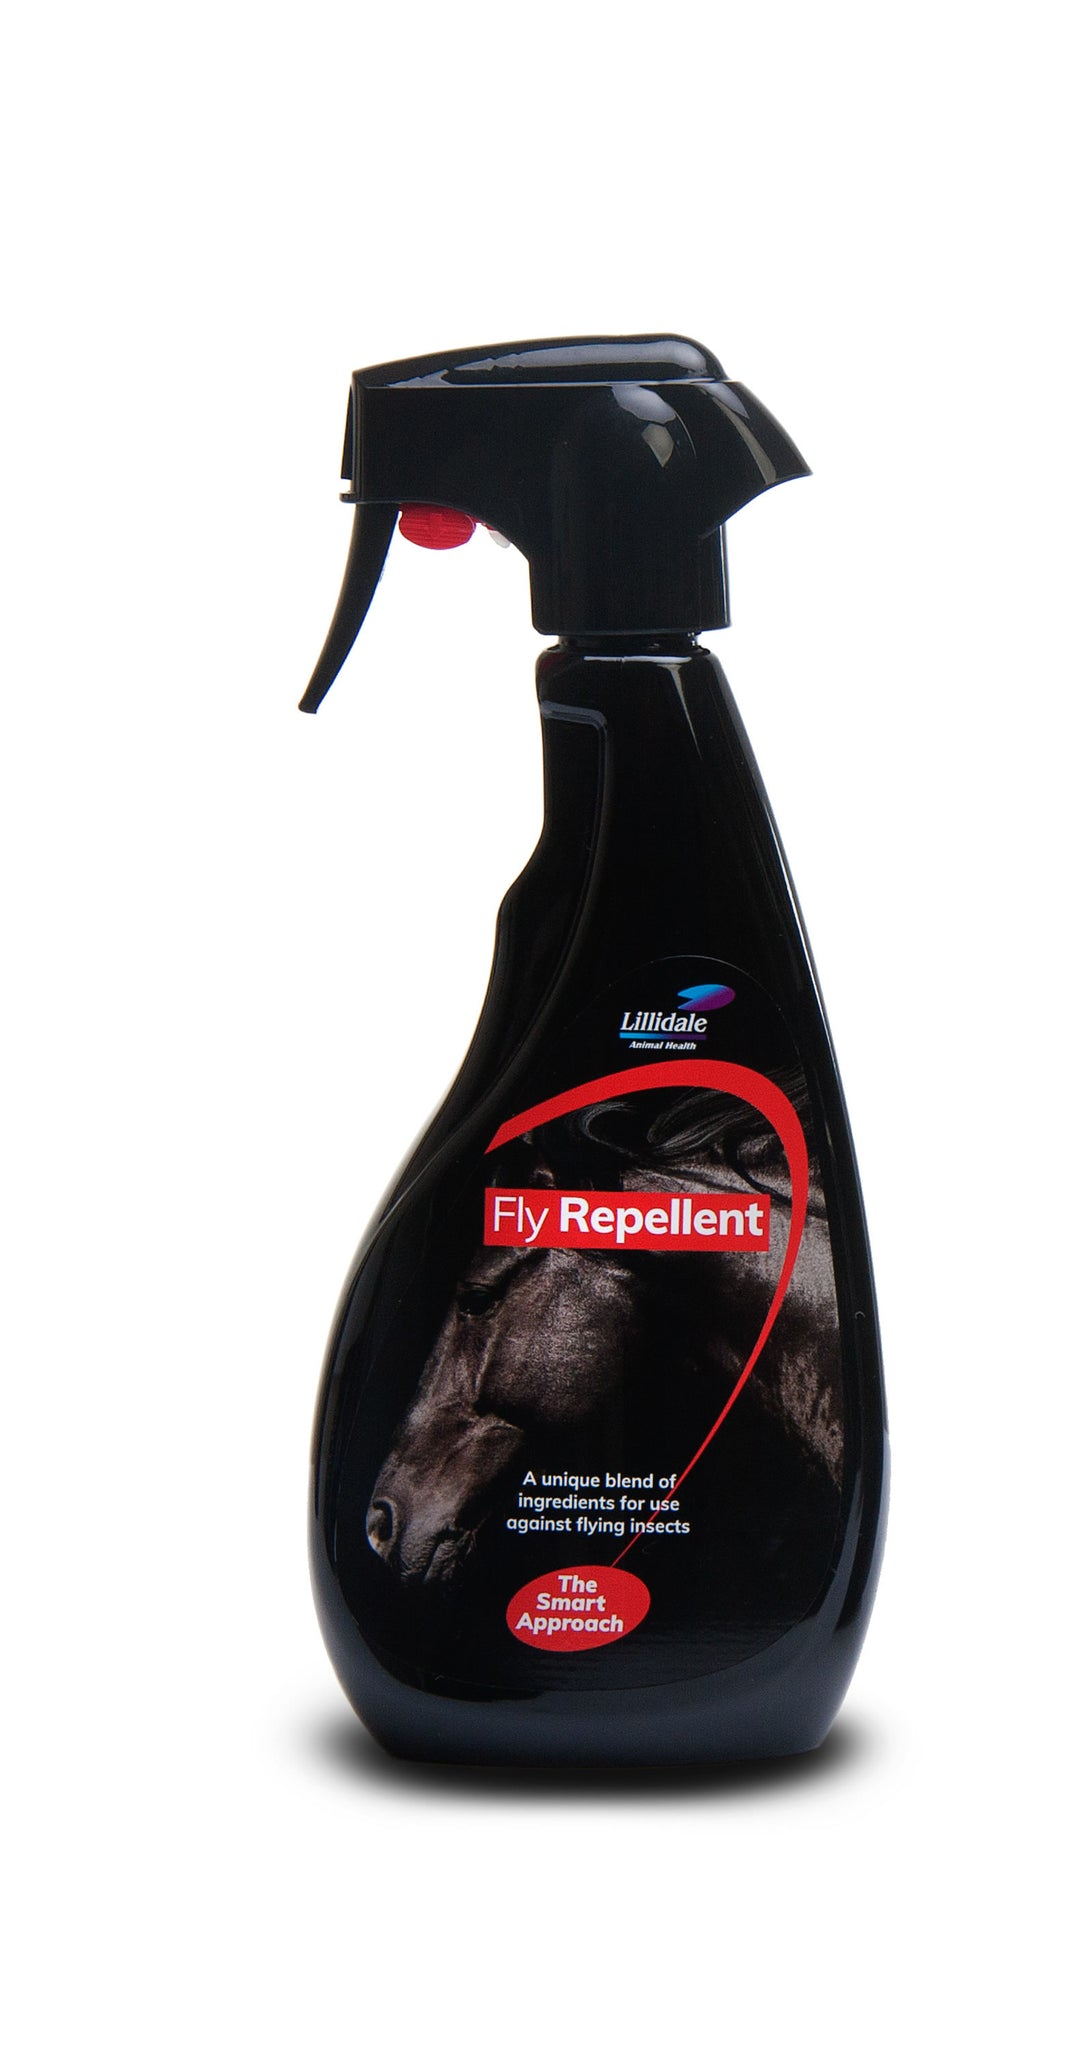 Lillidale Fly Repellent